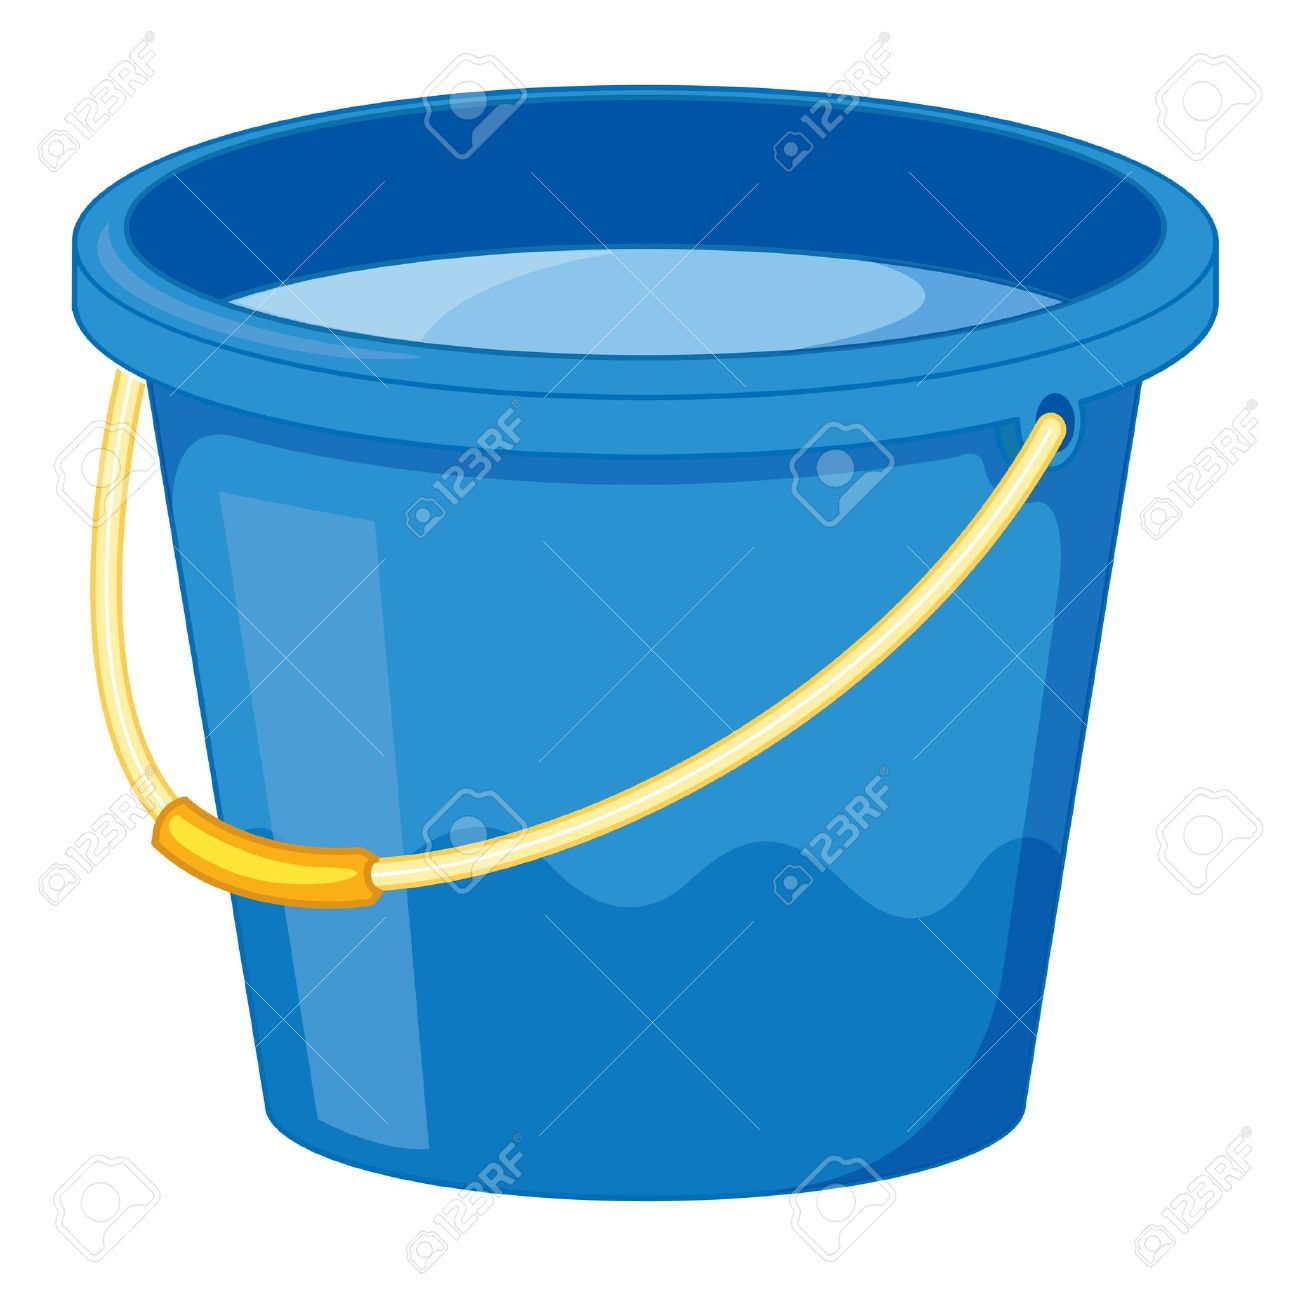 Pail of water clipart 1 » Clipart Station.